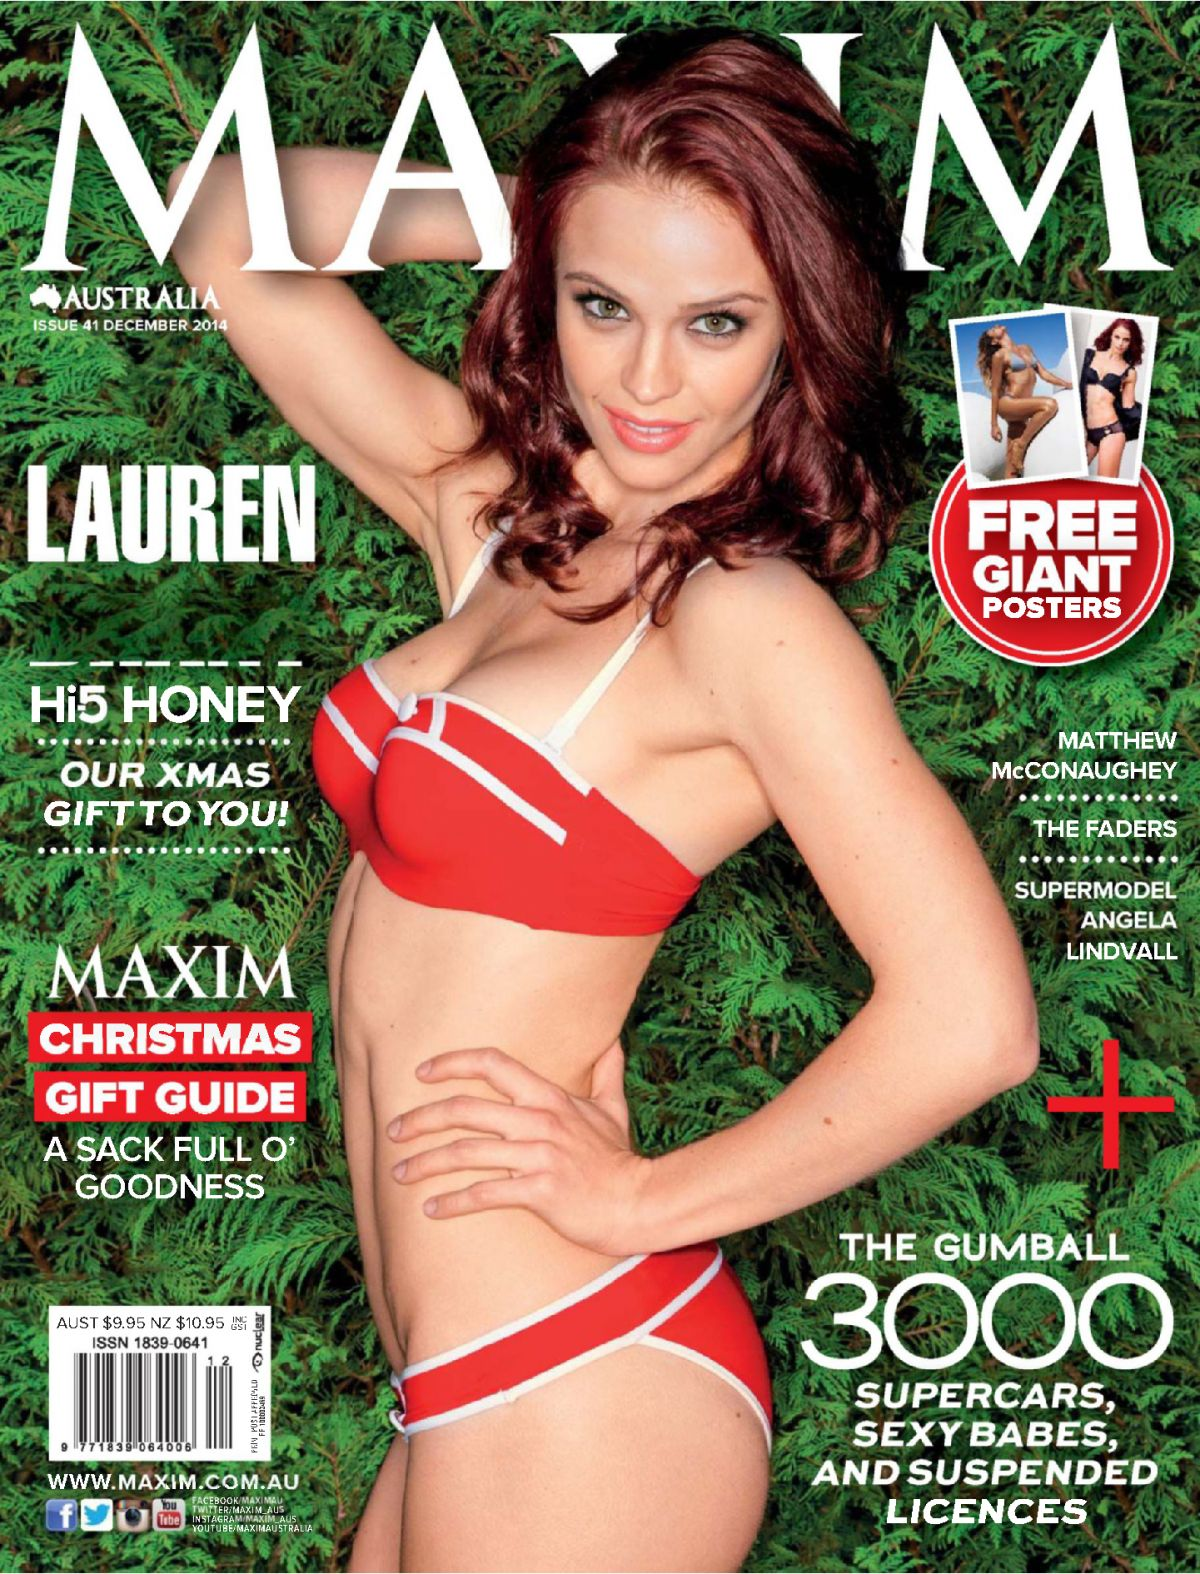 LAUREN BRANT in Maxim Magazine, Australia December 2014 Issue